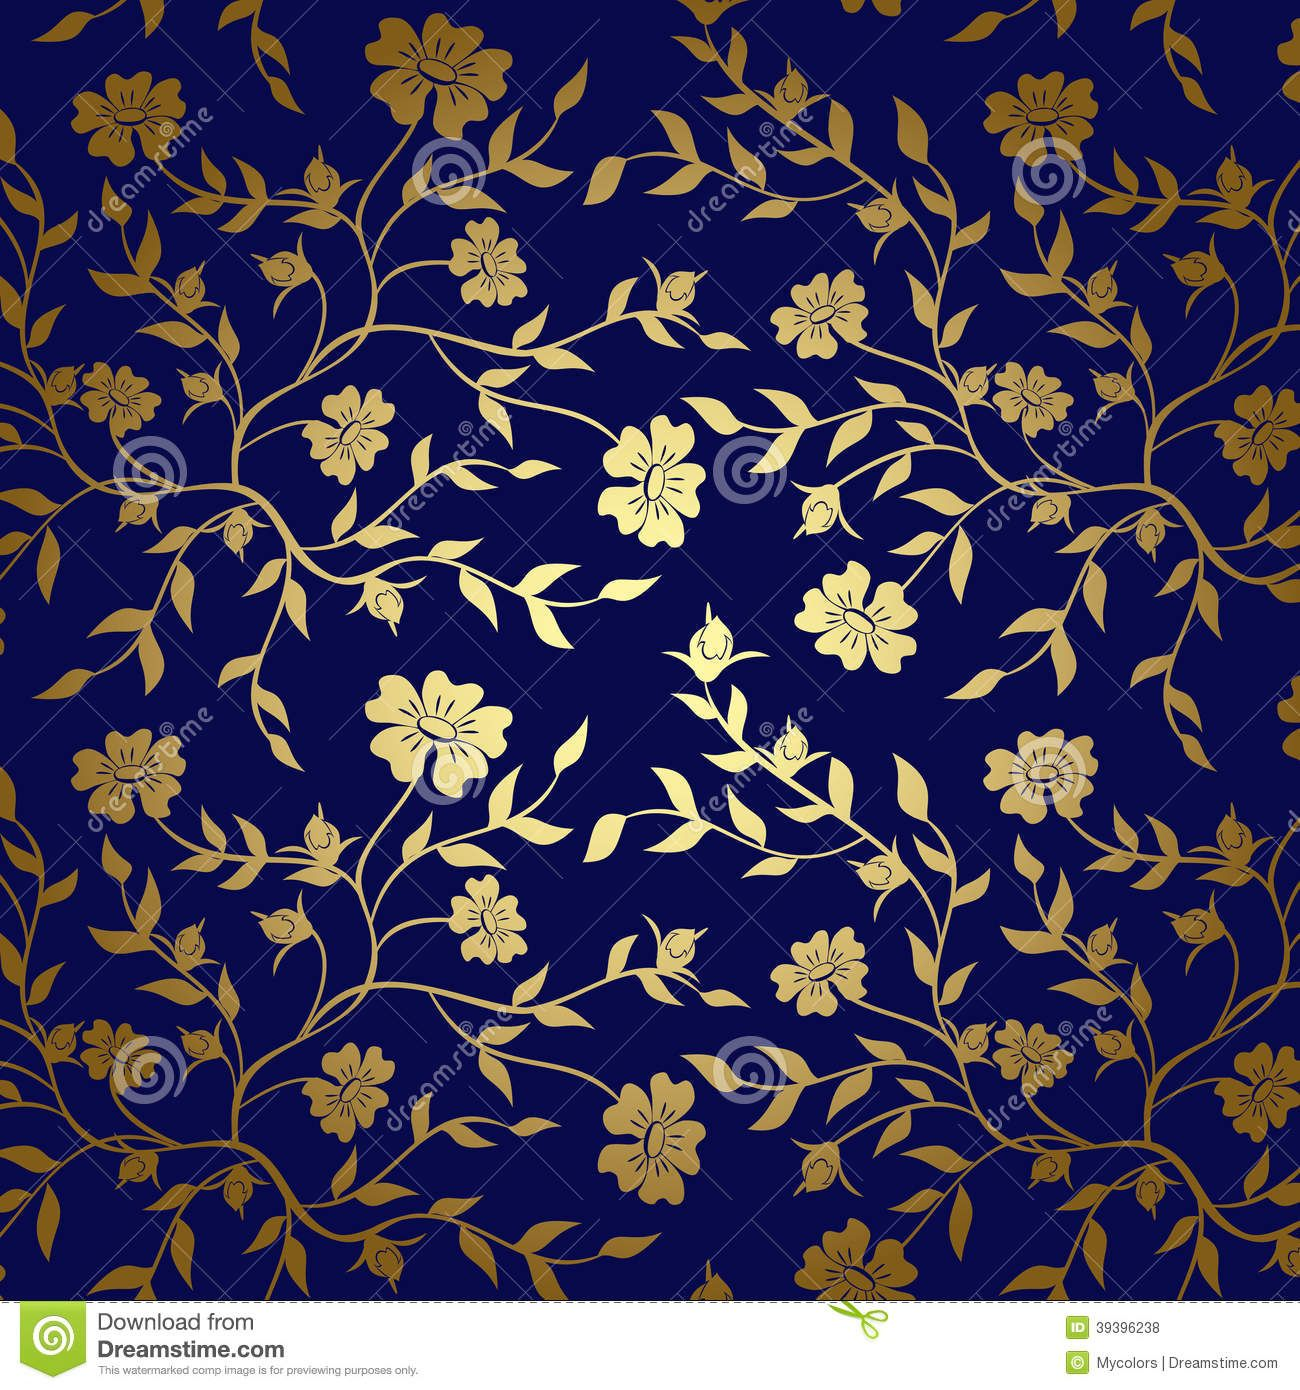 Images for navy blue and gold chevron background for Dark blue and gold wallpaper